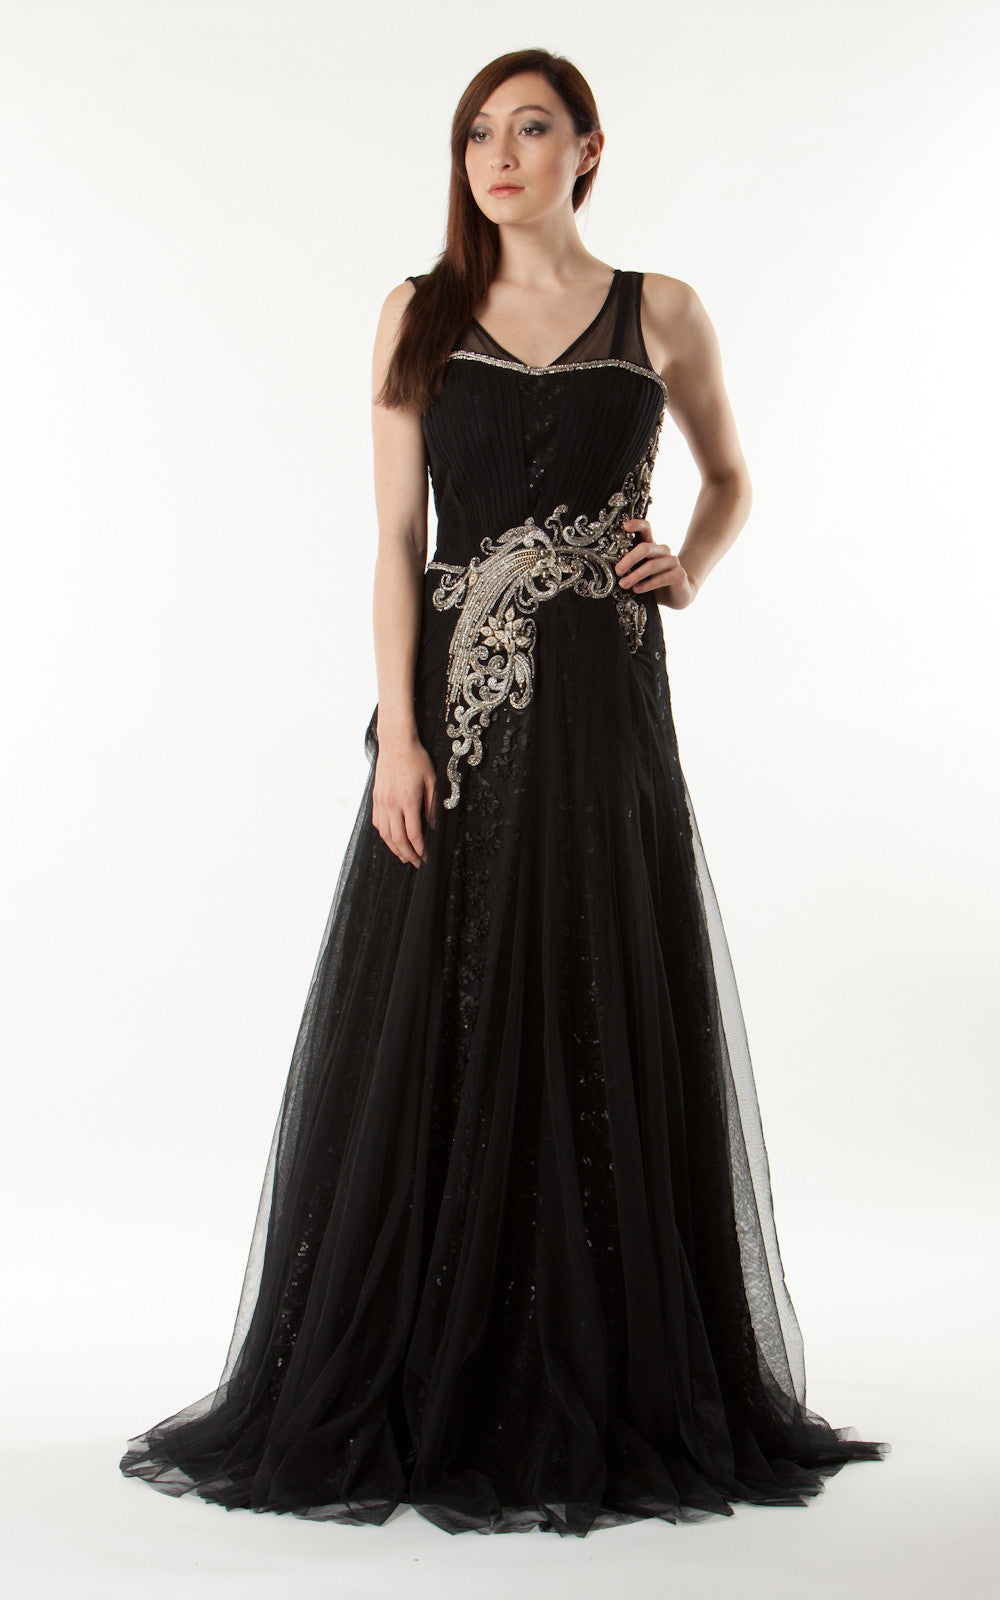 Stunning Ball Gown - SILK By Meena